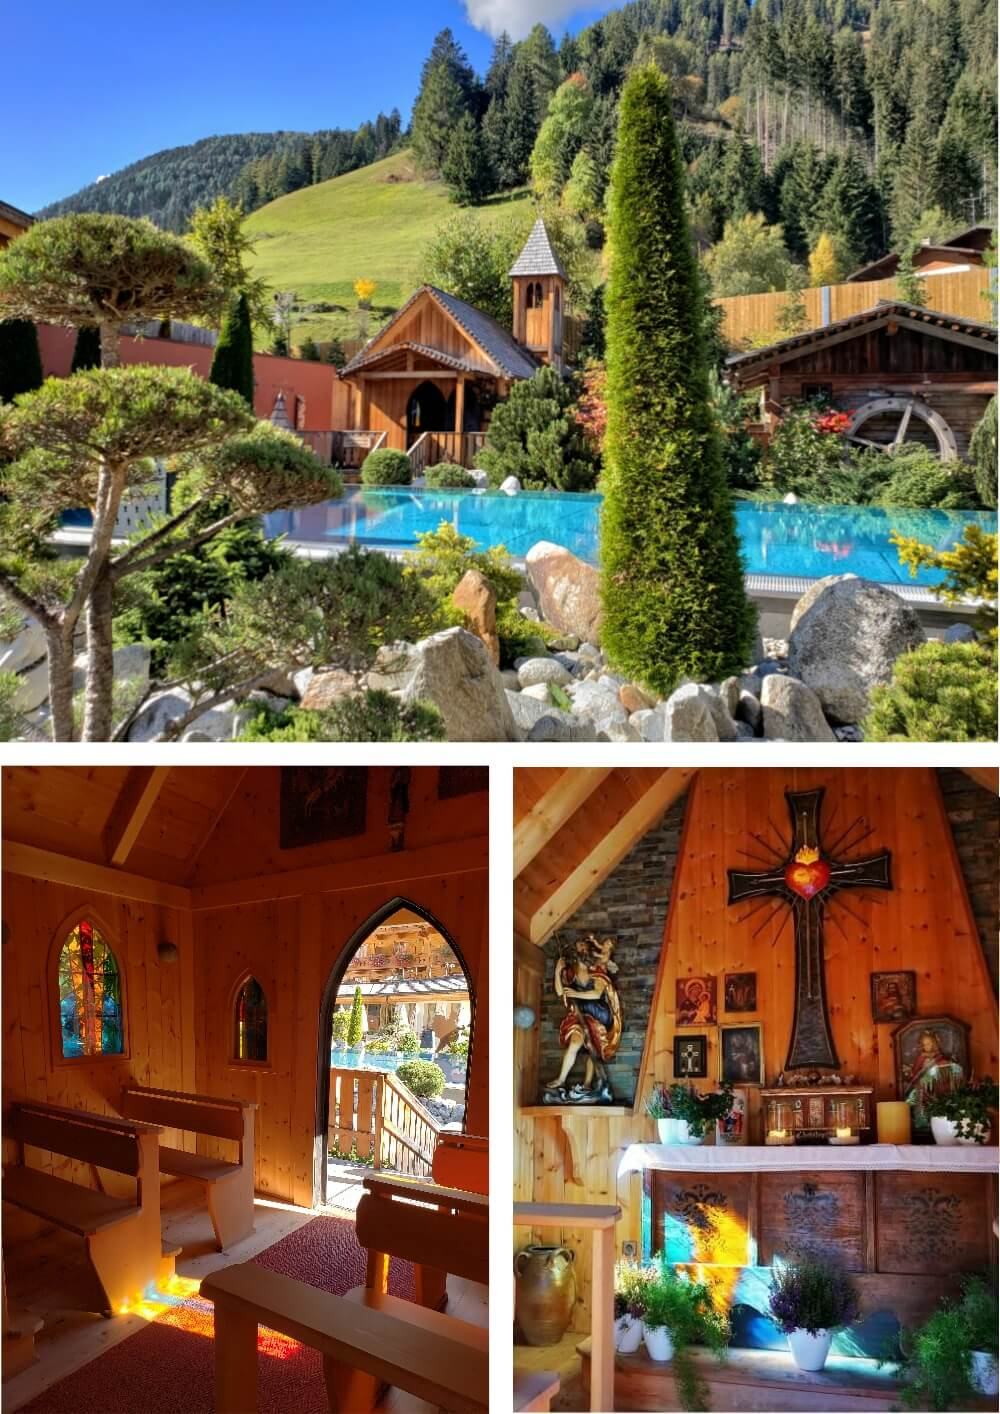 Hotel Quelle Poolside Chapel